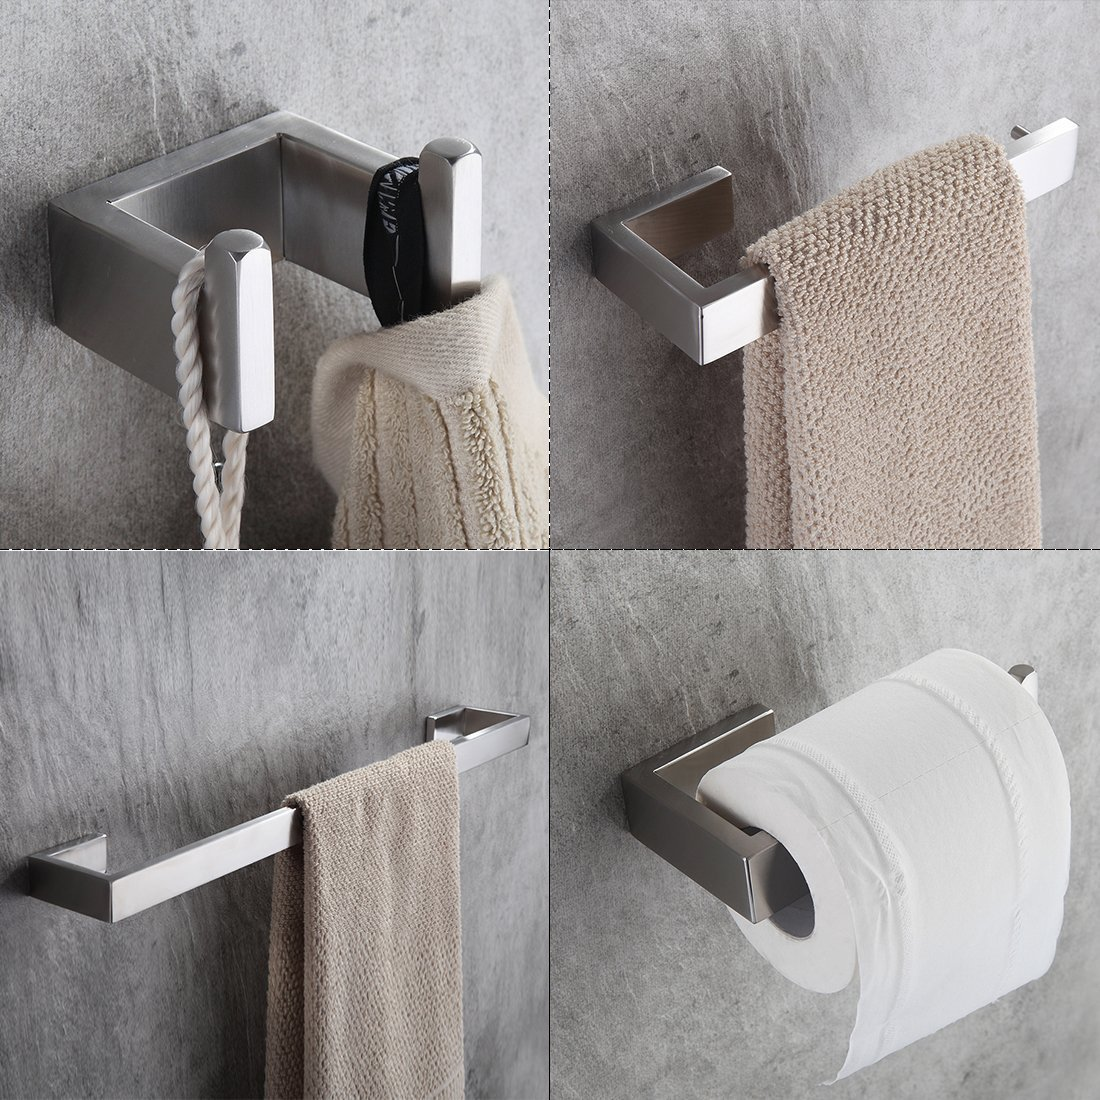 Fapully Four Piece Bathroom Accessories Set Stainless Steel Wall Mounted,Brushed Nickel Finished by FAPULLY